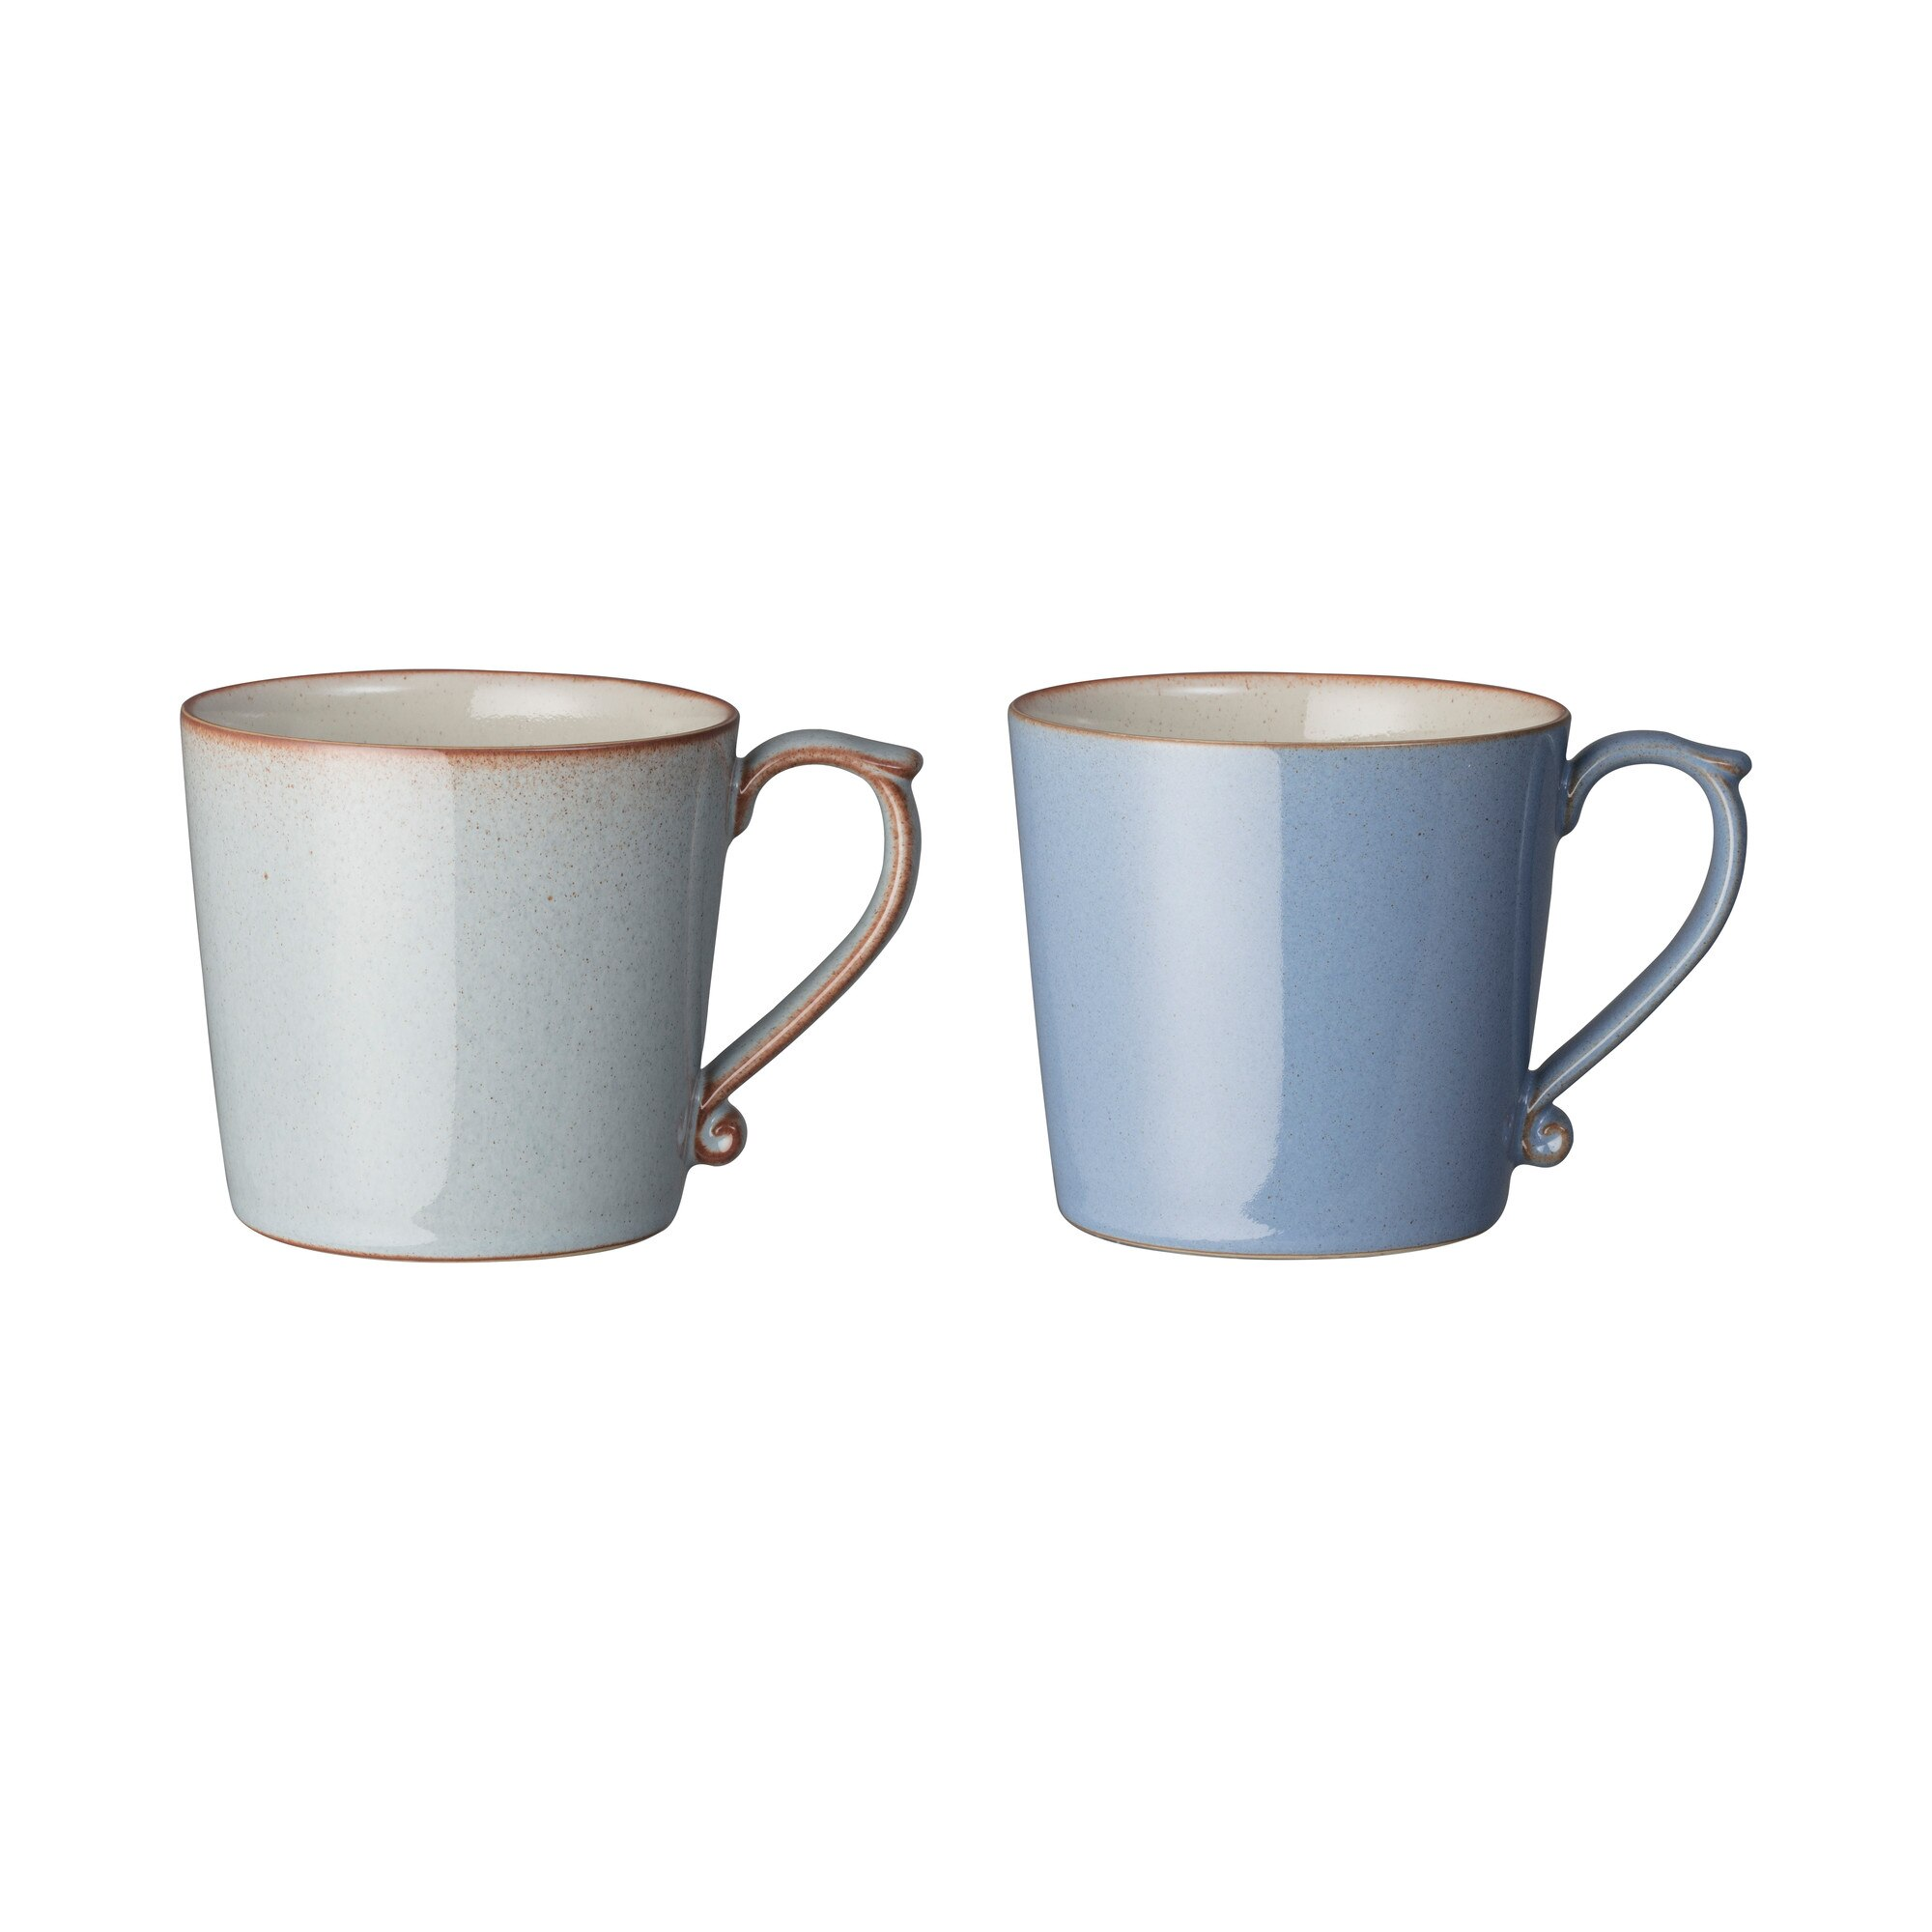 Compare retail prices of Always Entertaining - The Blue Edit 2 Piece Mug Set (Dark) to get the best deal online